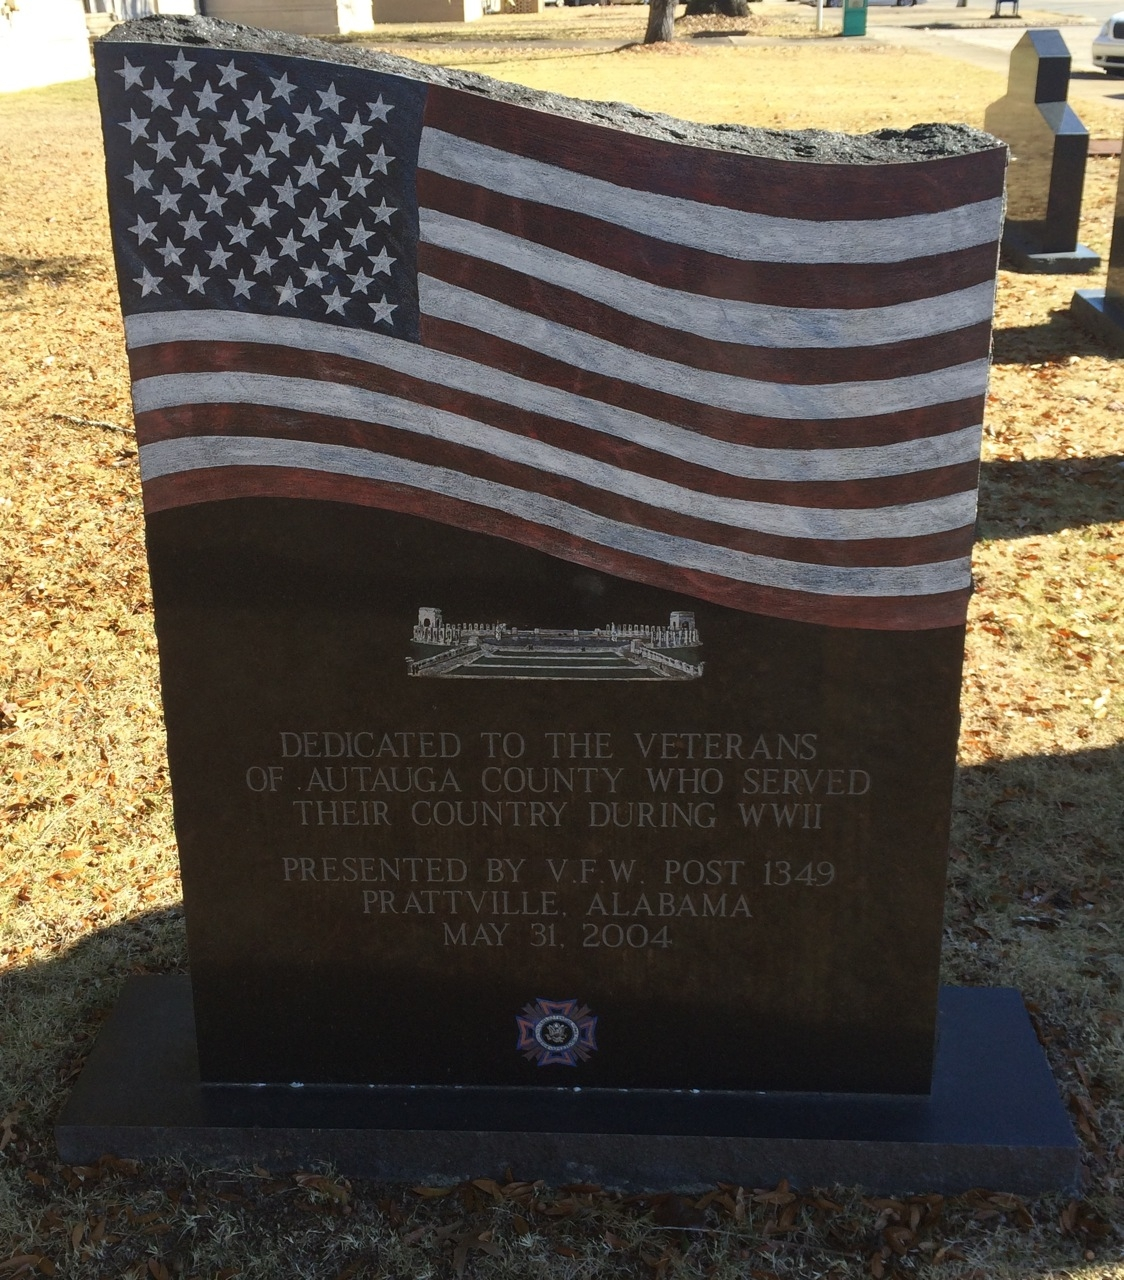 Autauga County World War II Memorial